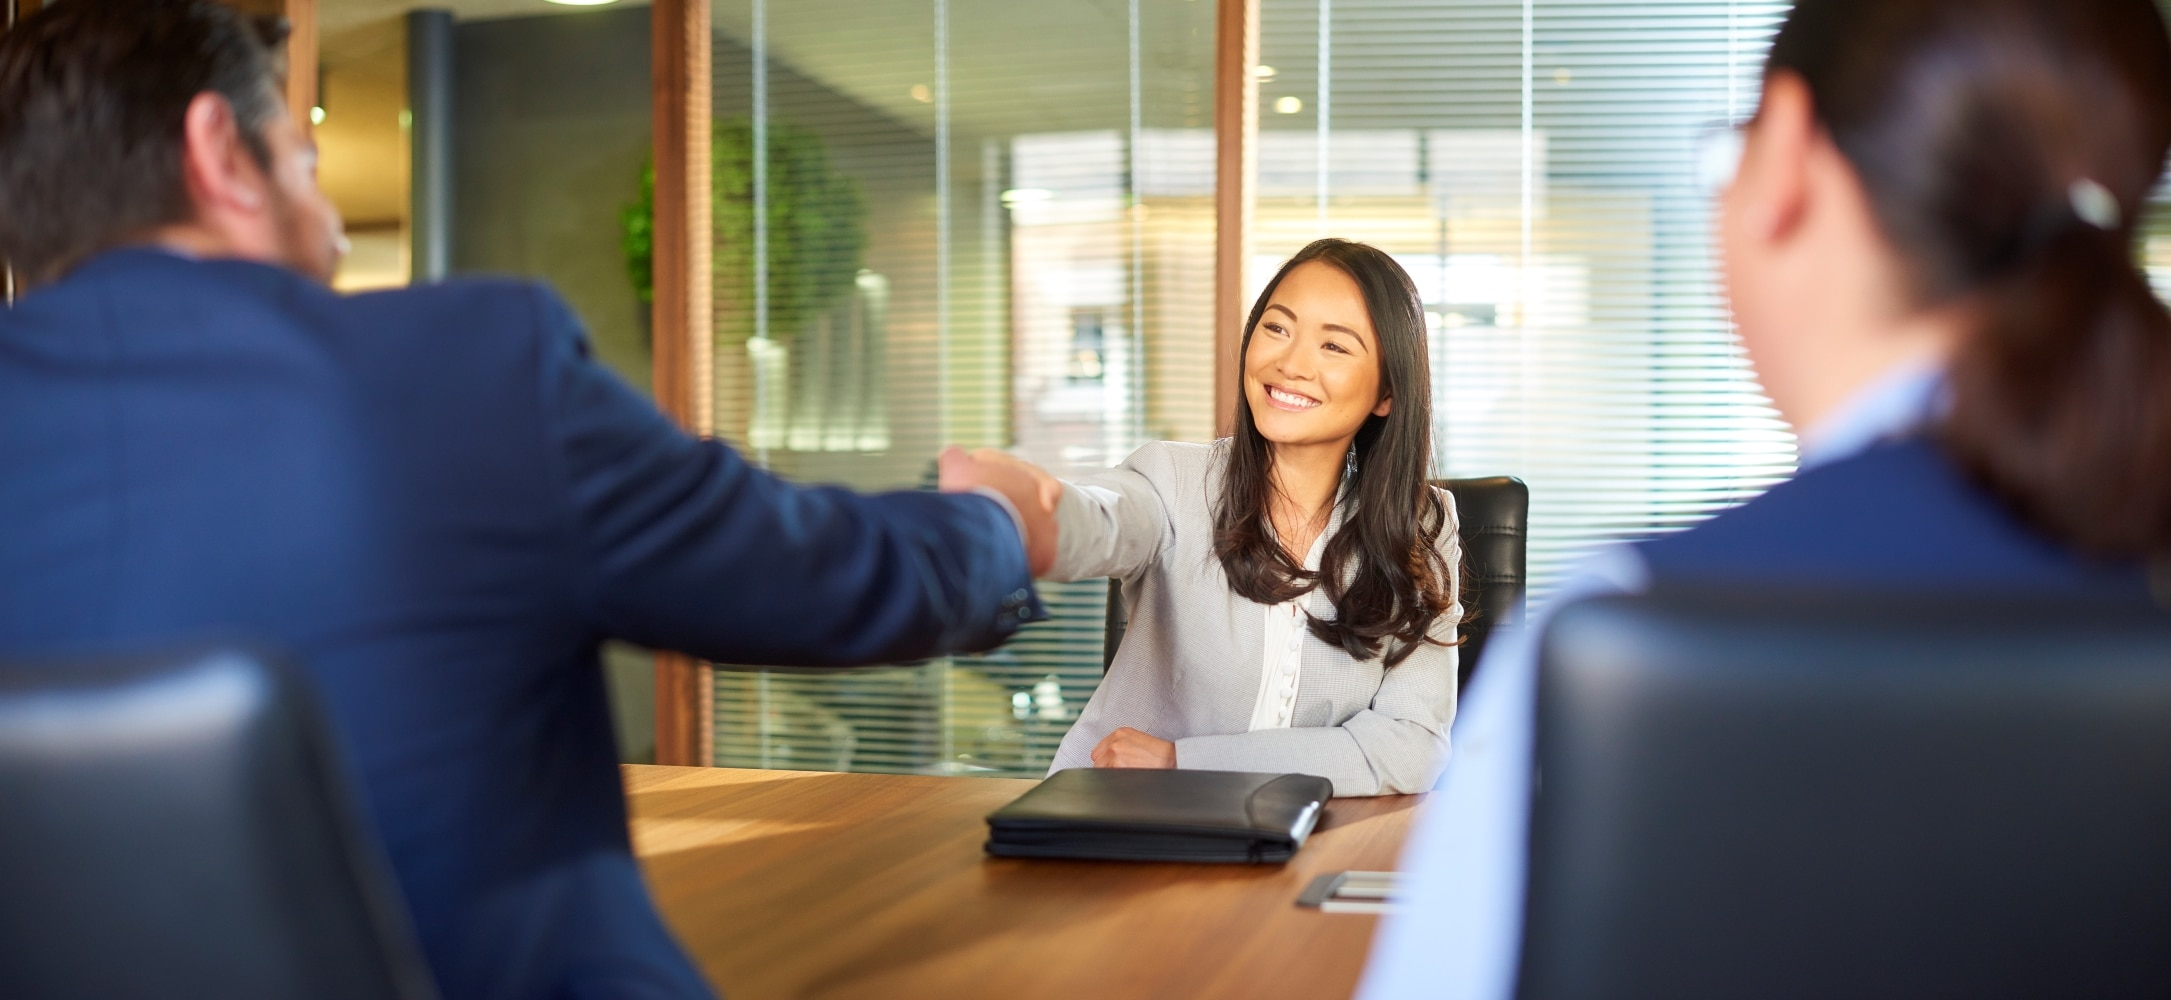 woman shaking hands at a business meeting